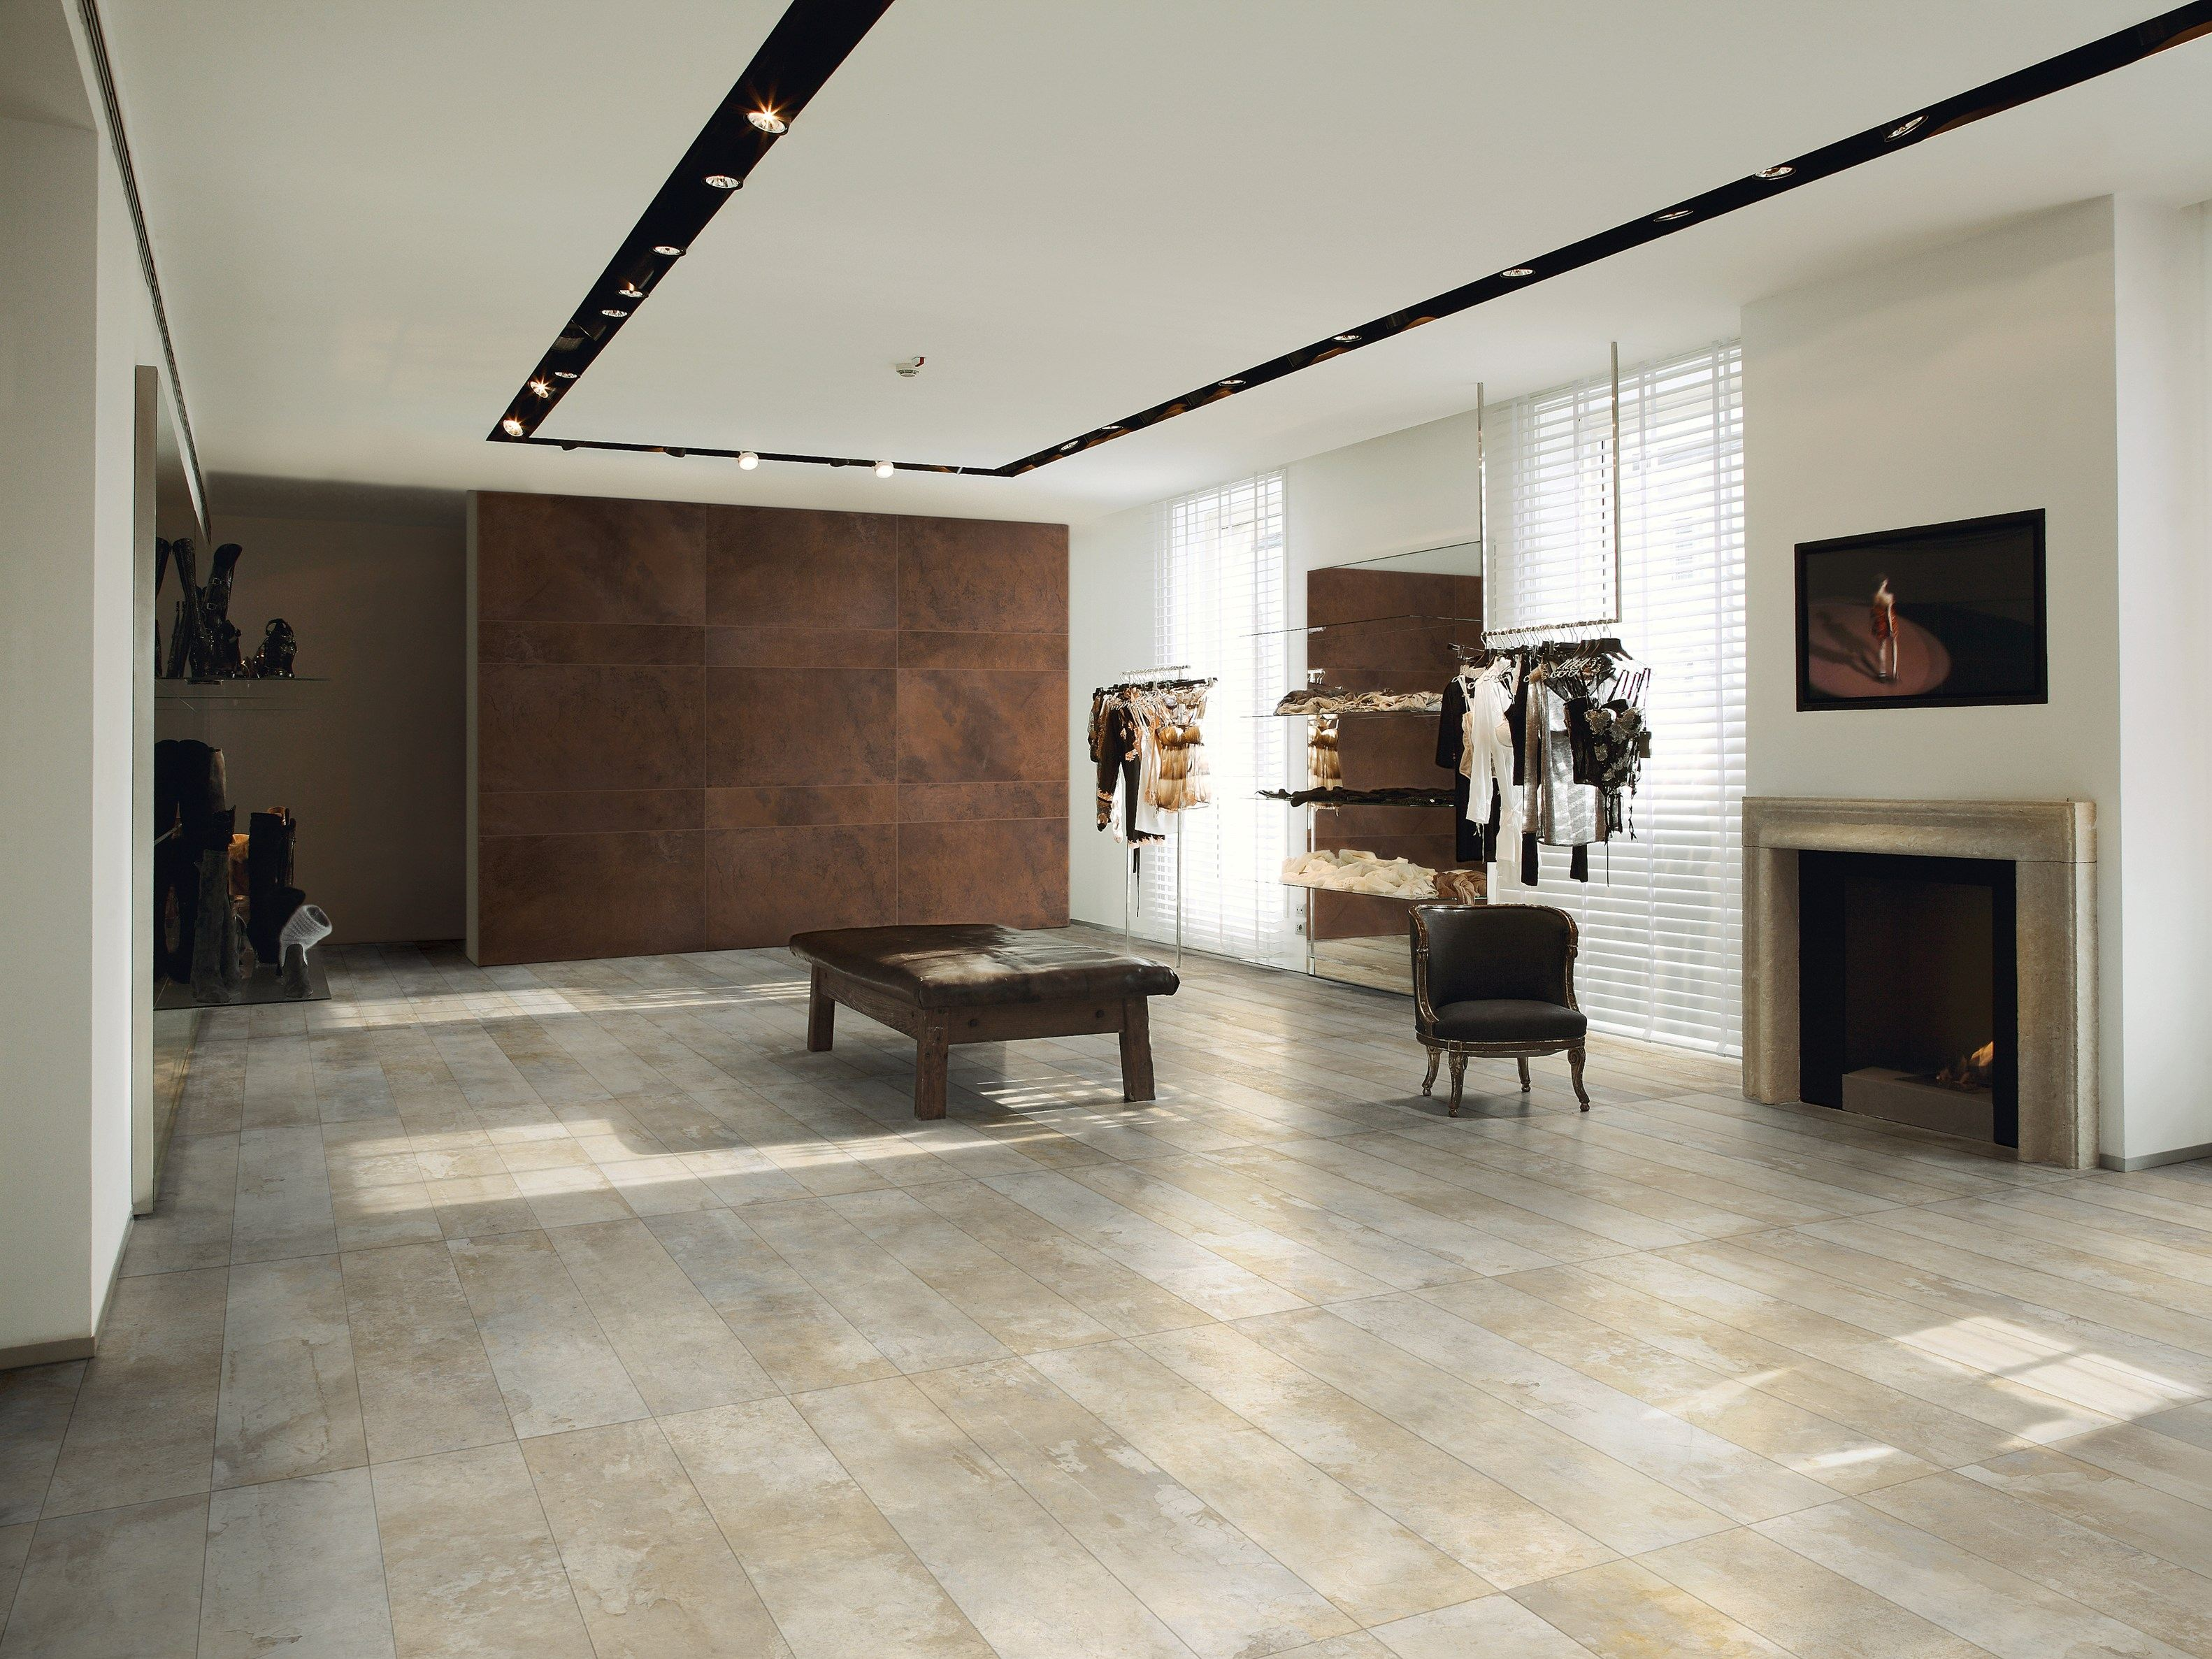 Porcelain stoneware wall floor tiles design industry by for Carrelage 60x60